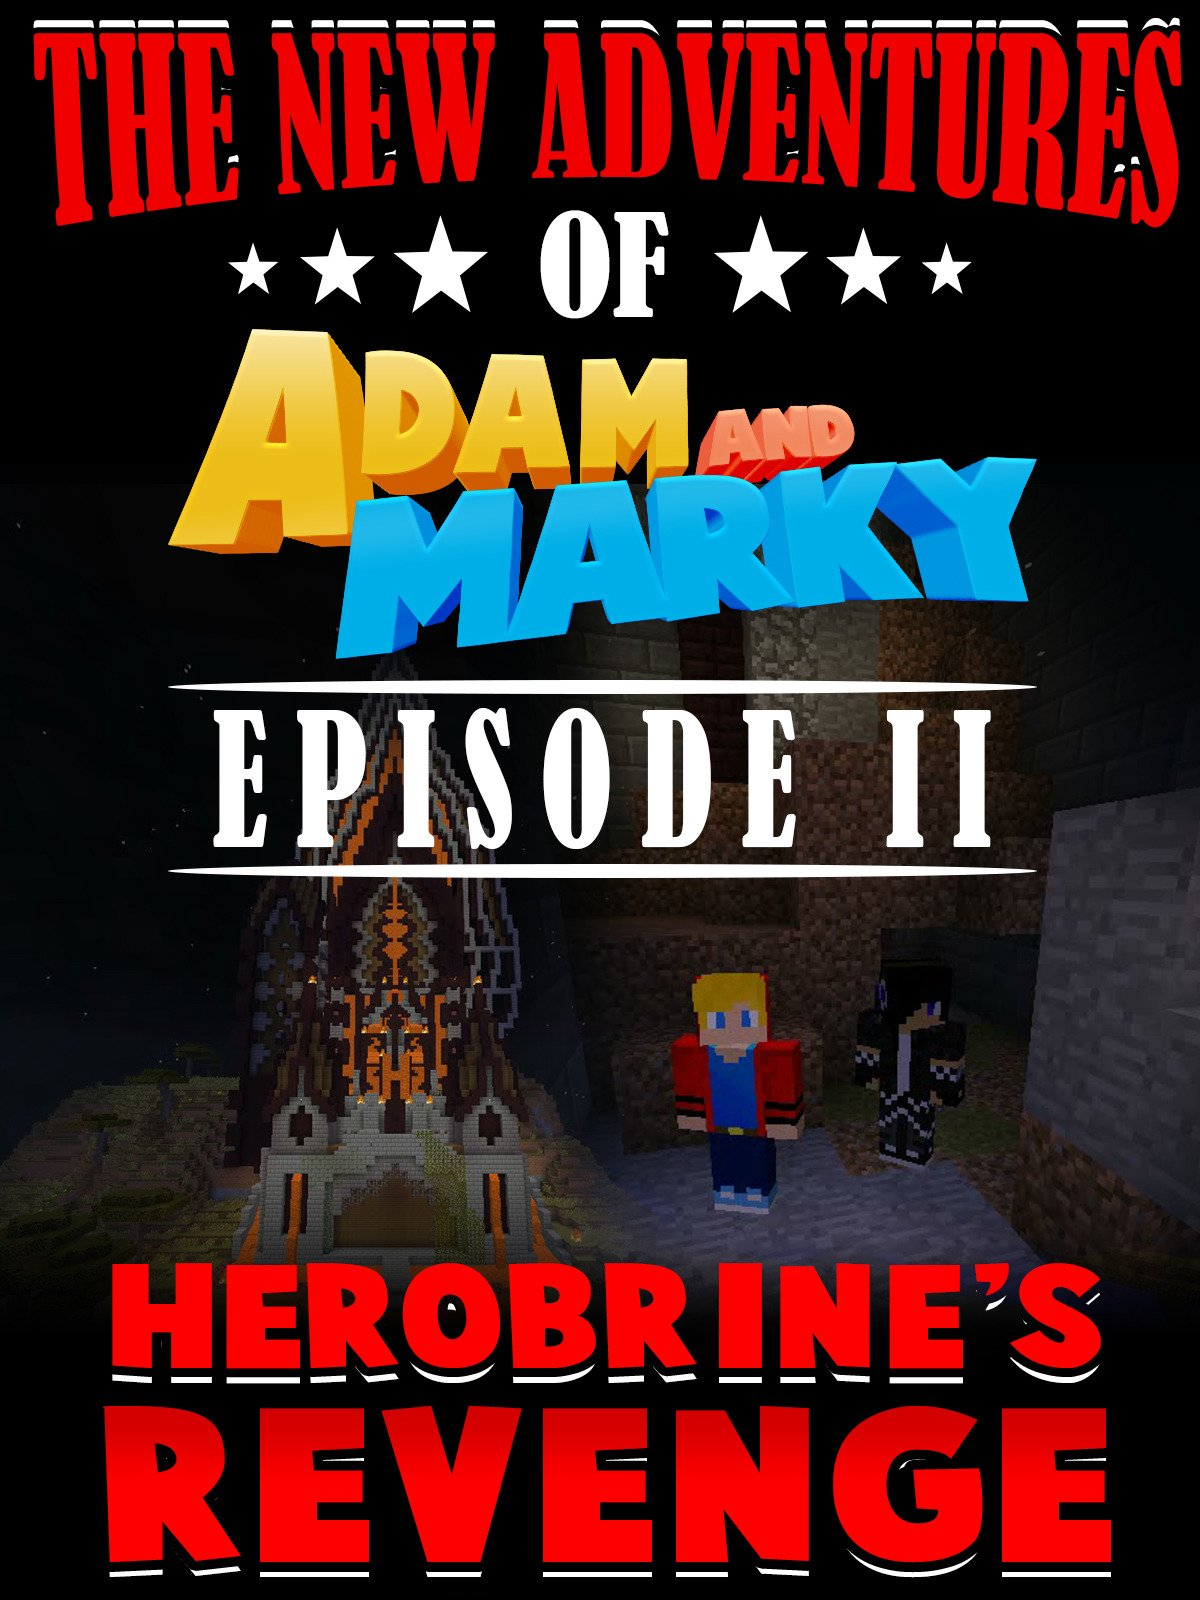 The New Adventures of Adam and Marky Episode II Herobrine's Revenge